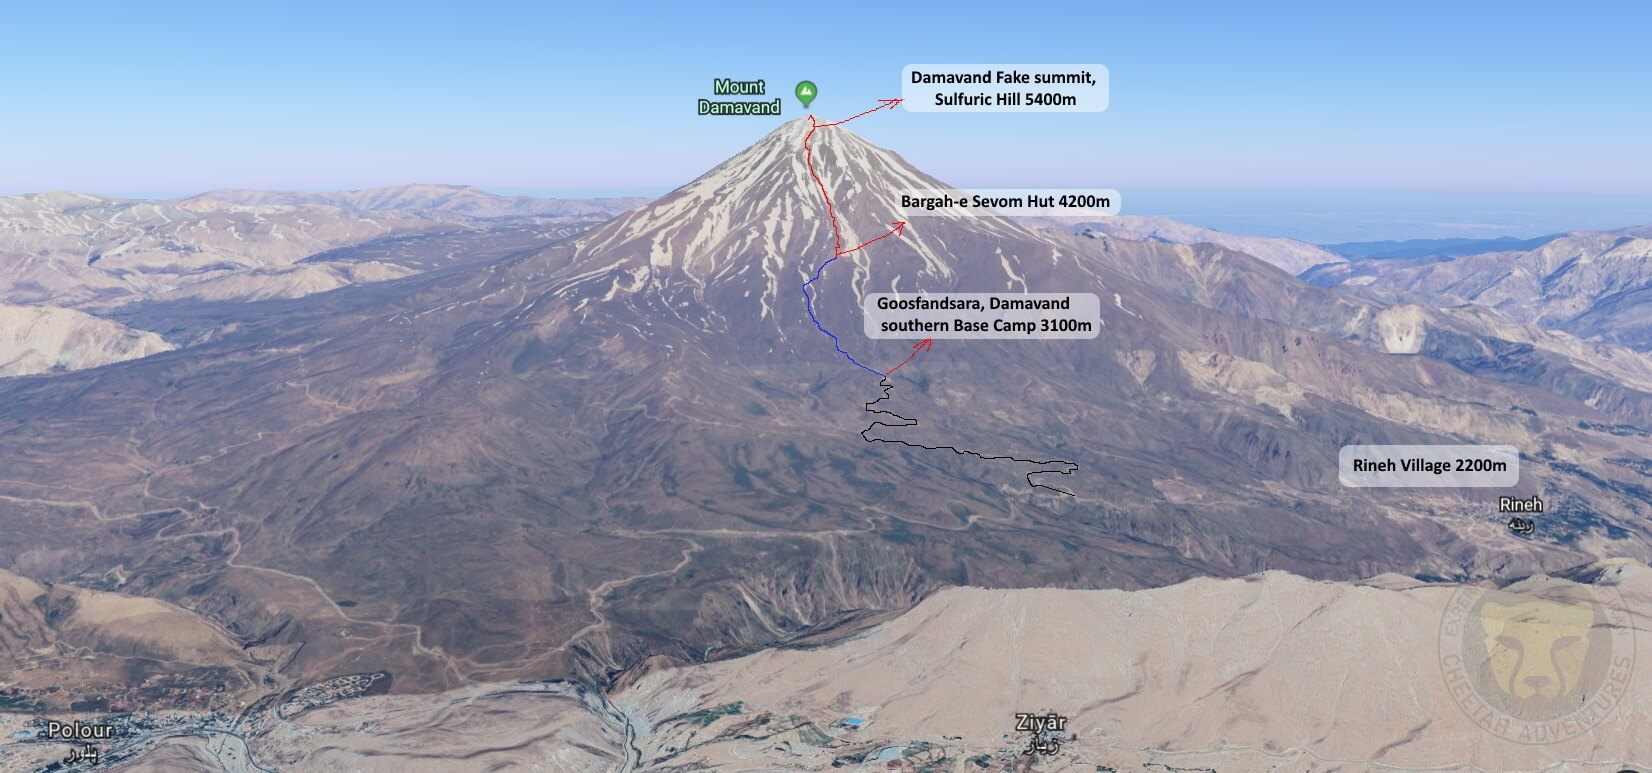 damavand trip map from south ridge path rineh goosfandsara bargah e sevom hut fake summit